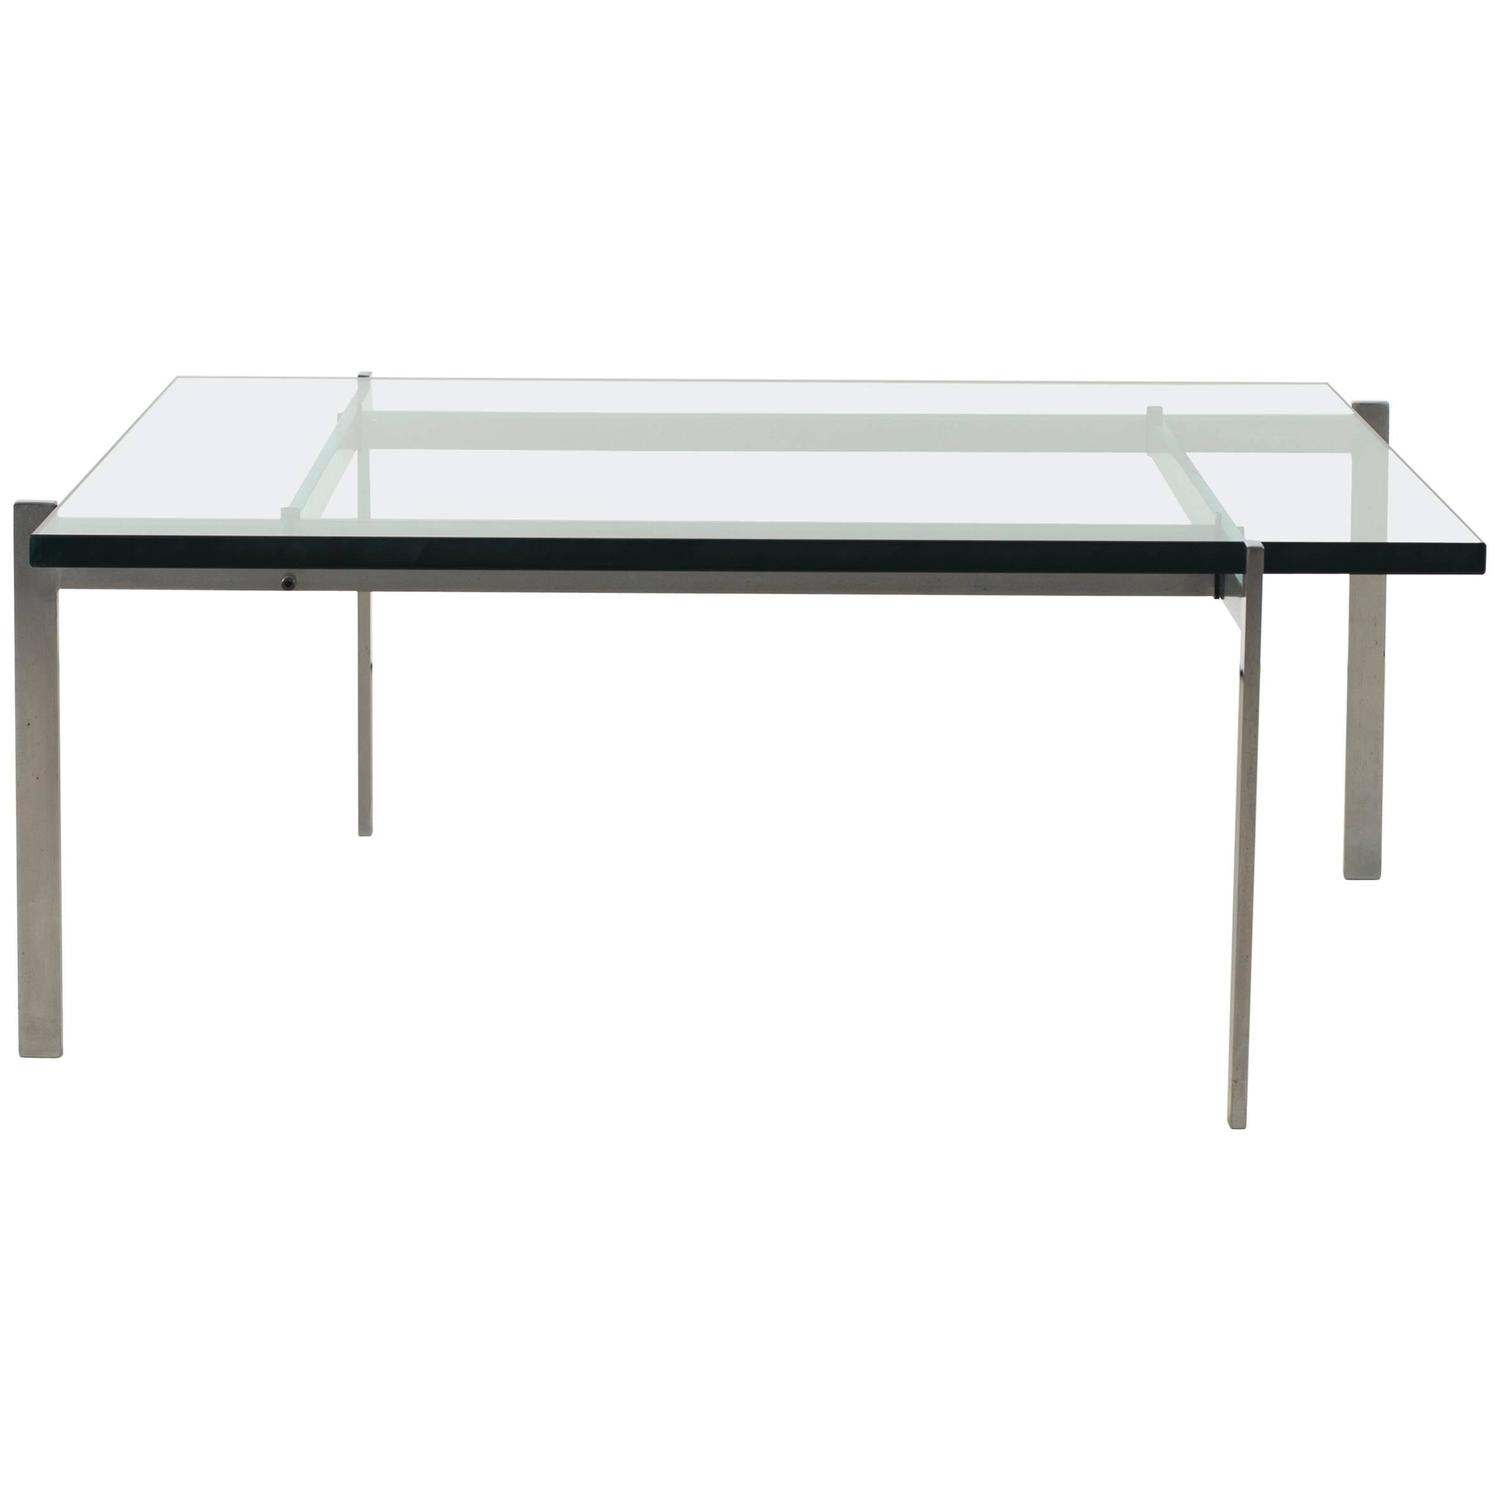 Poul Kjaerholm Coffee Table Metal and Glass PK61 E Kold